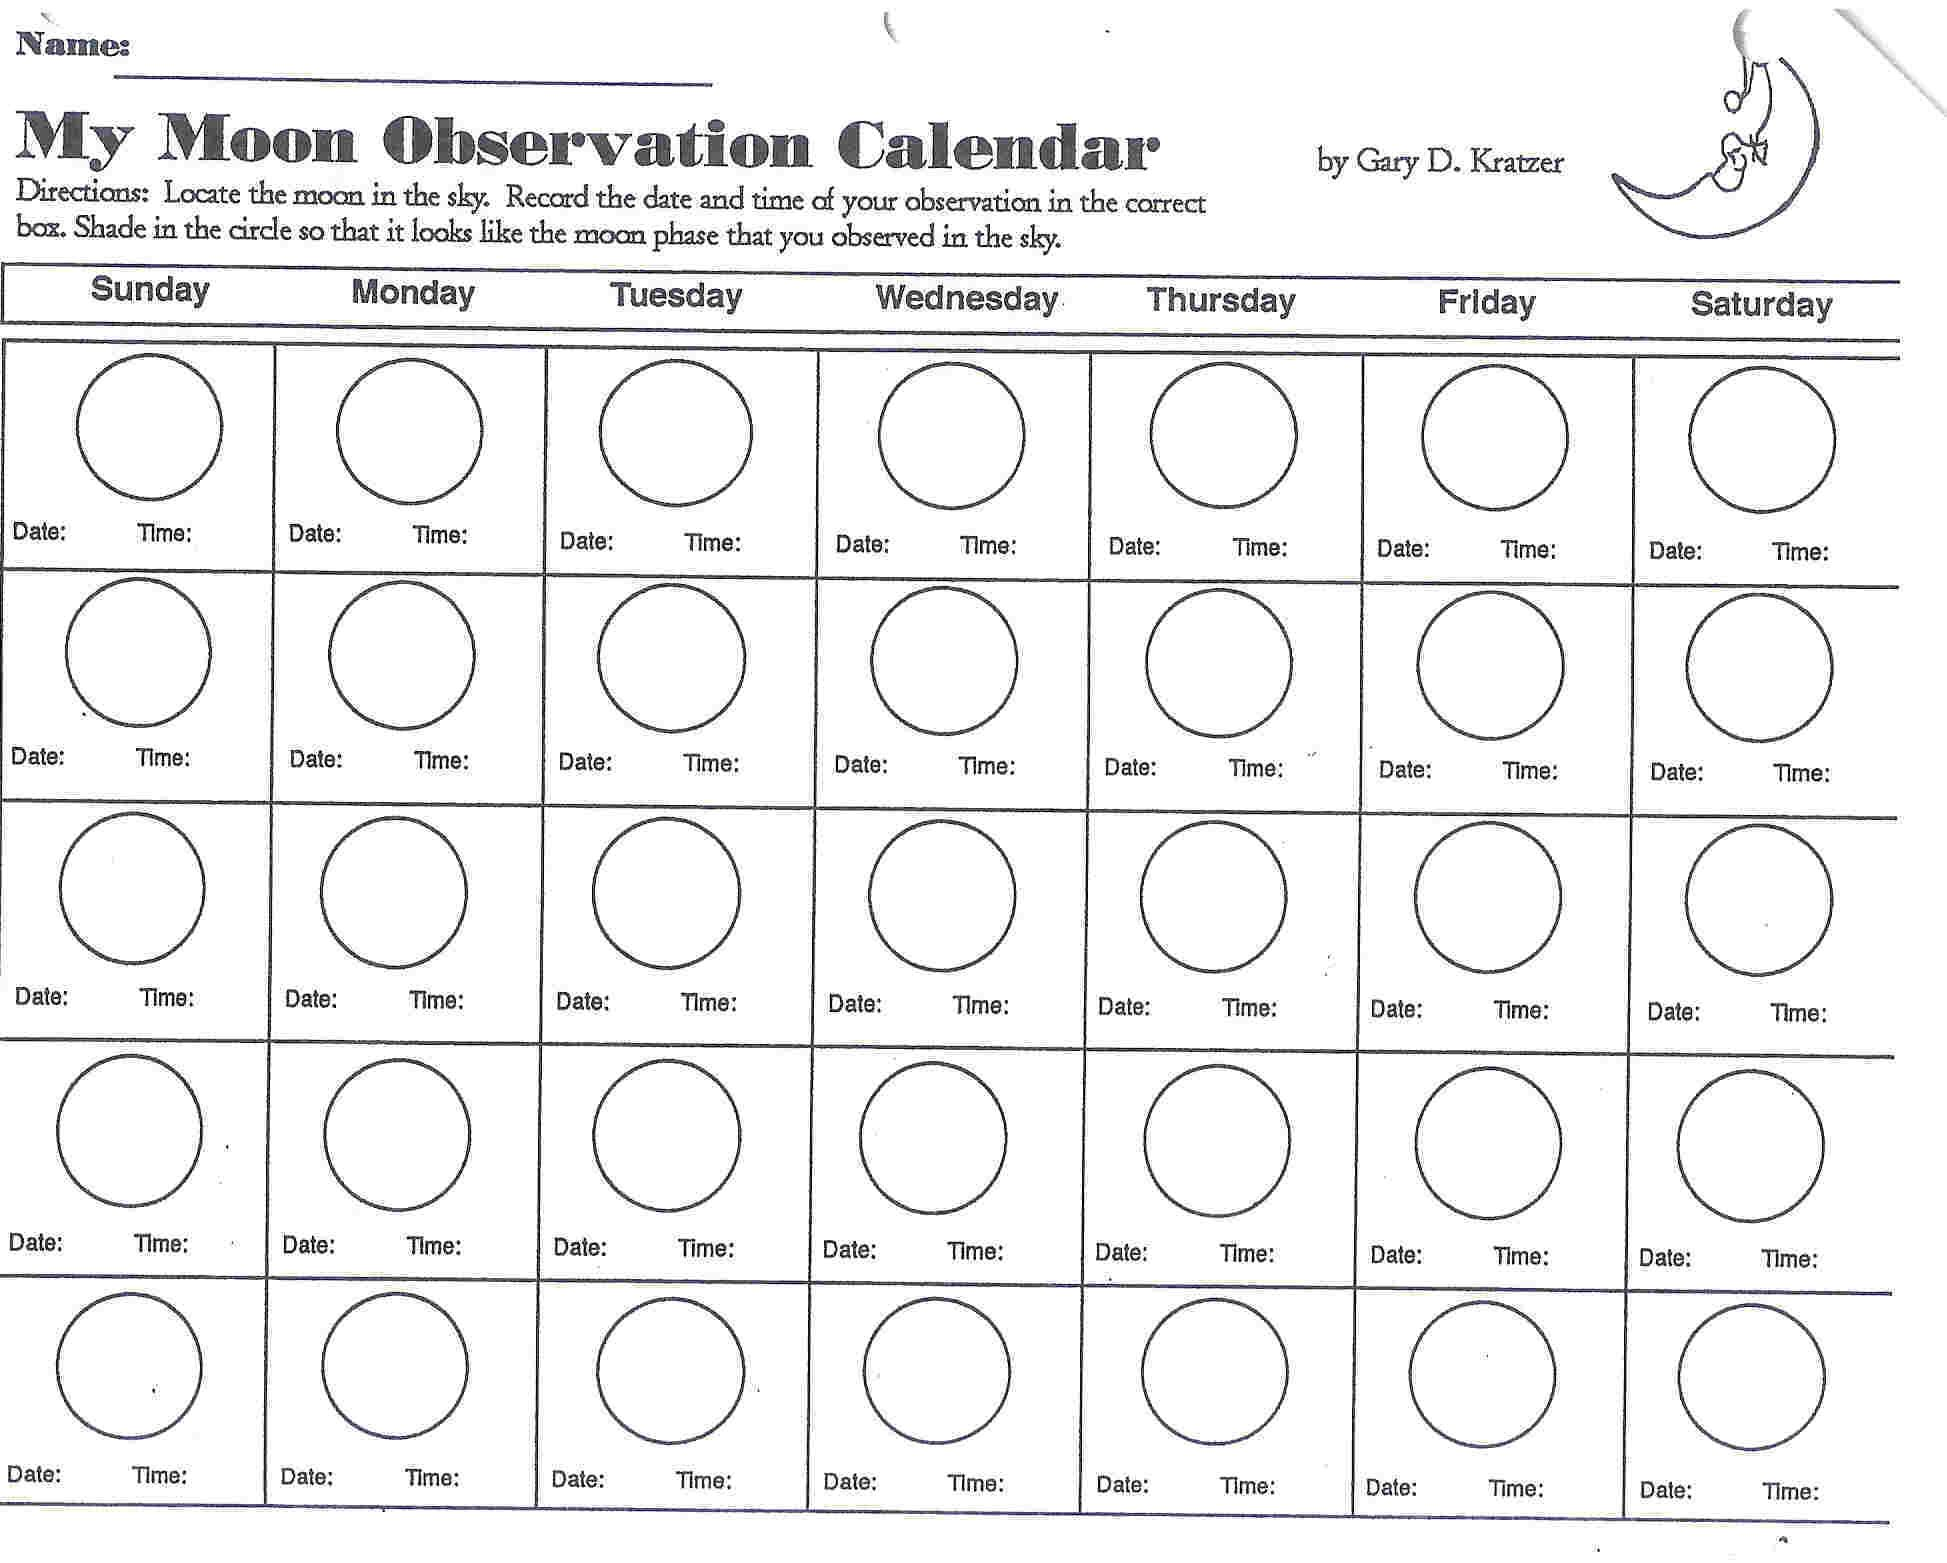 Moonobservationcalendar